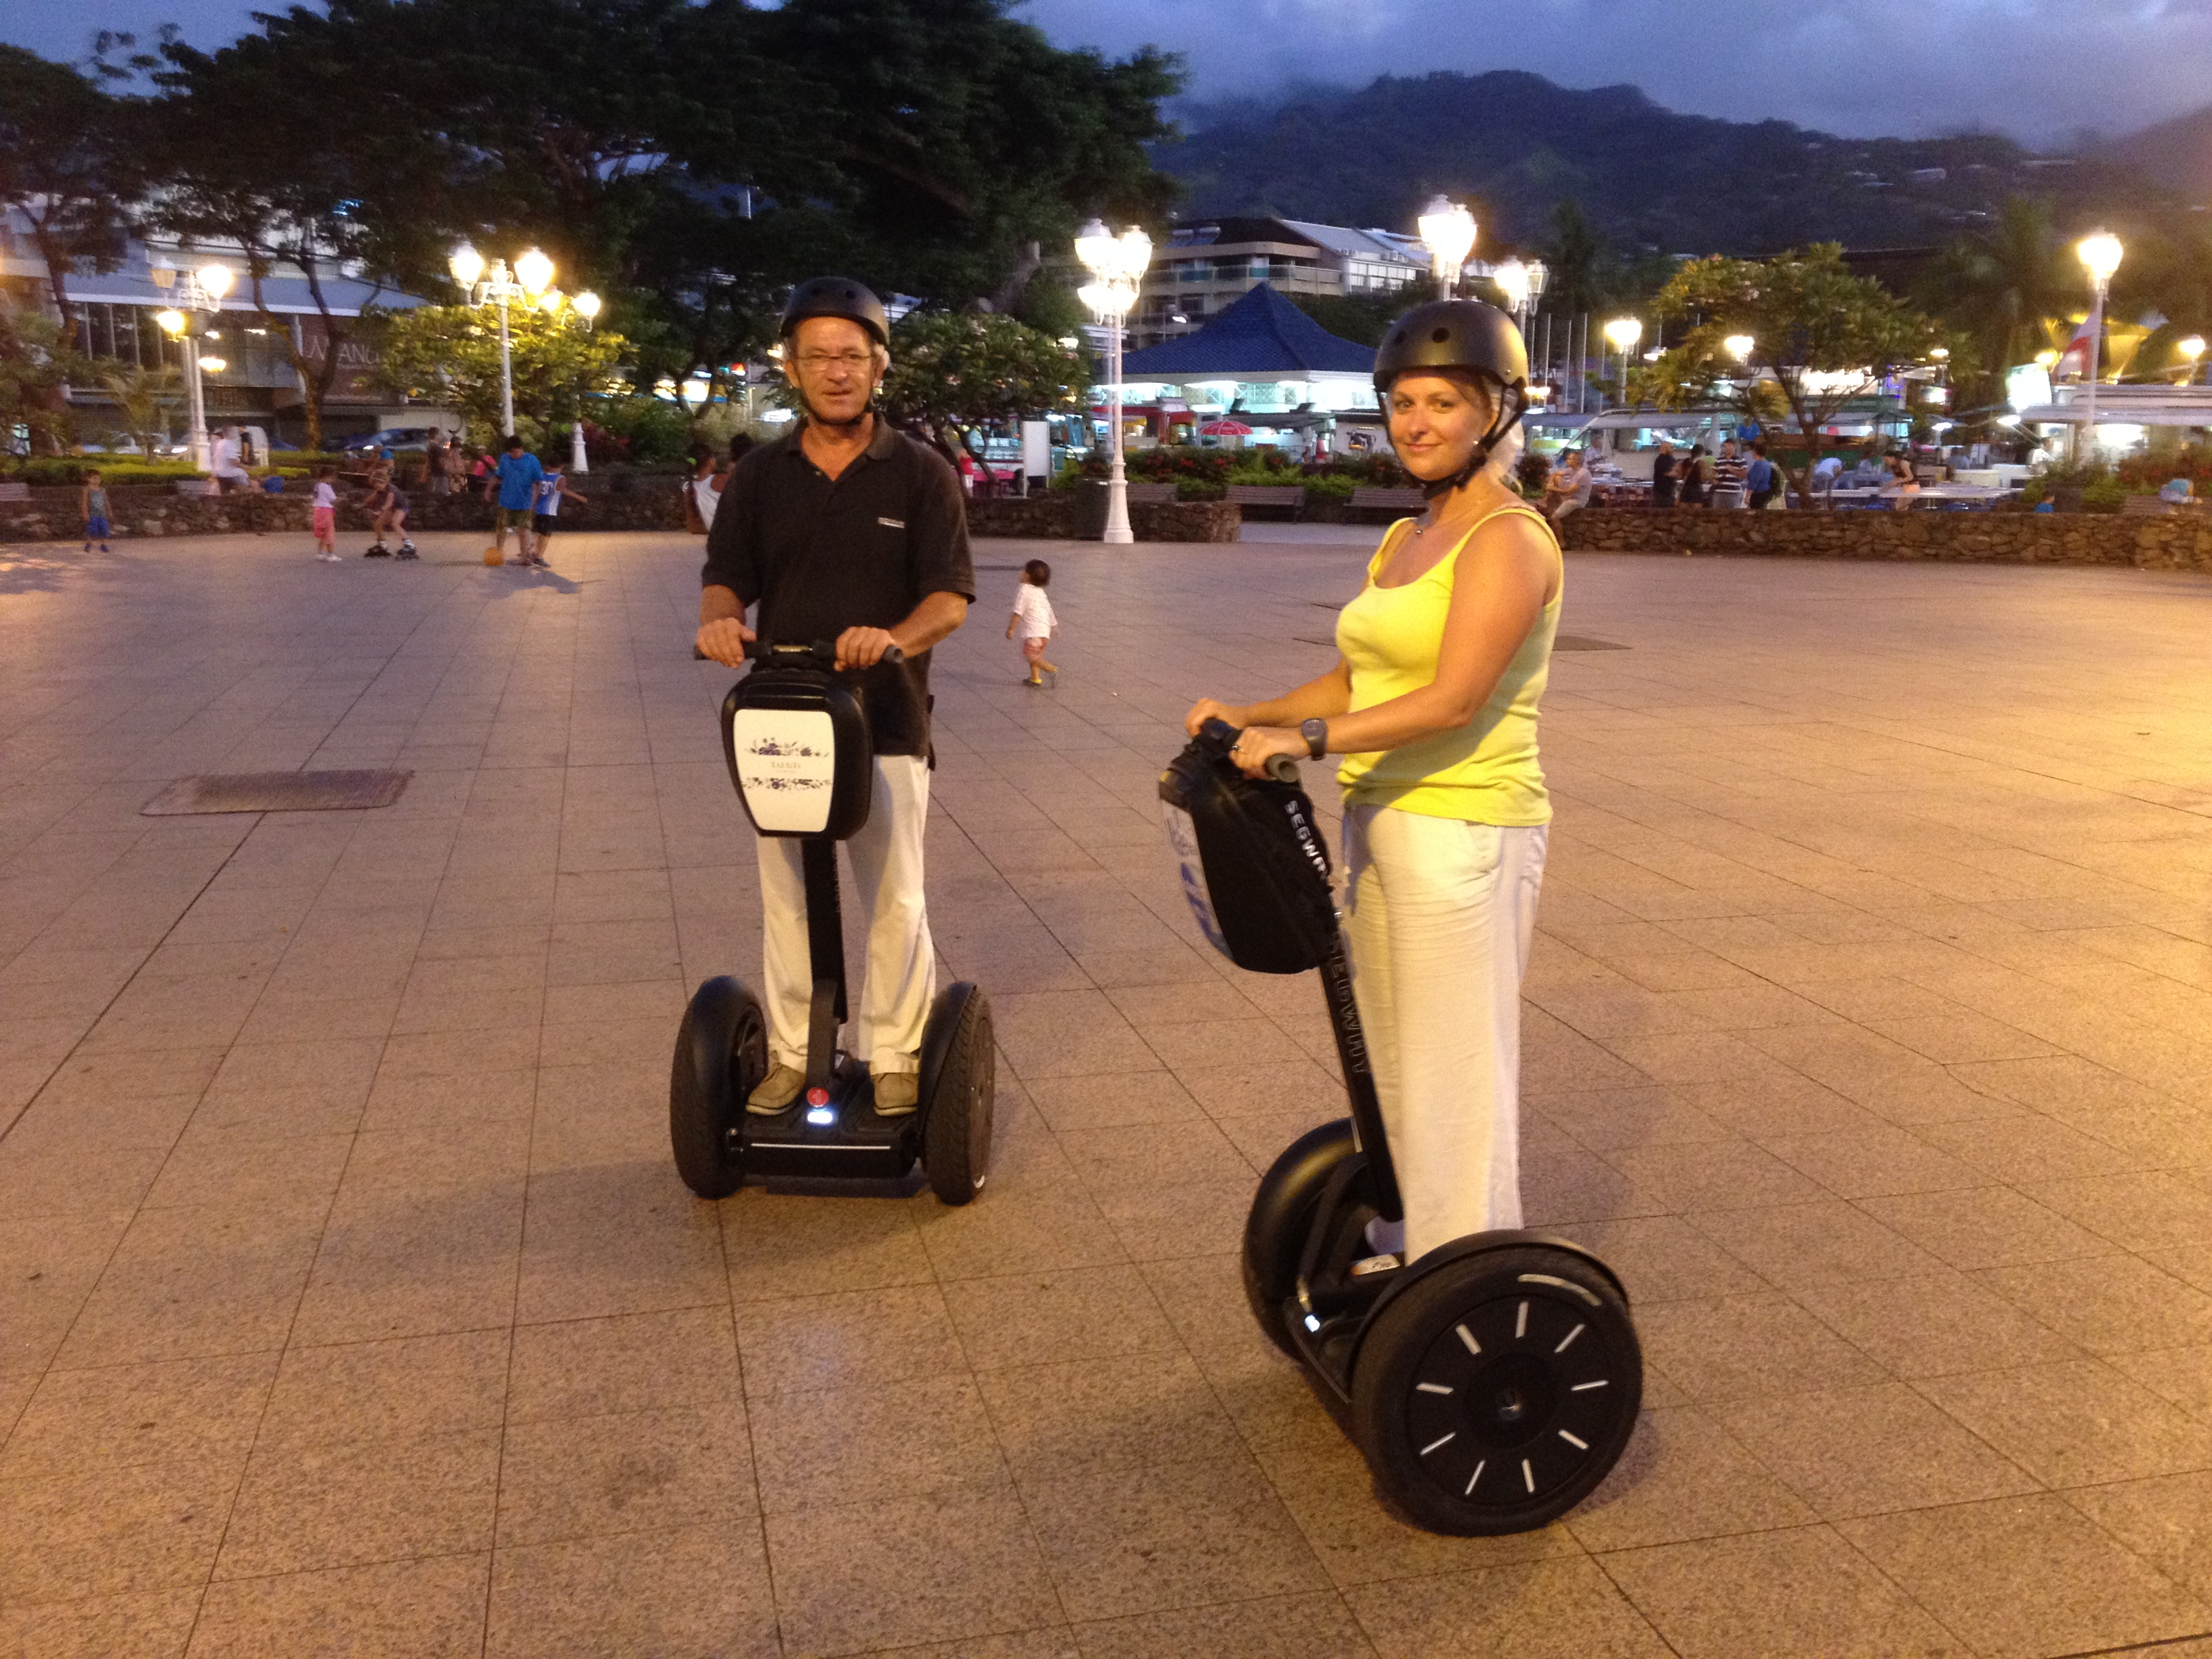 Papeete by night with Segway PT